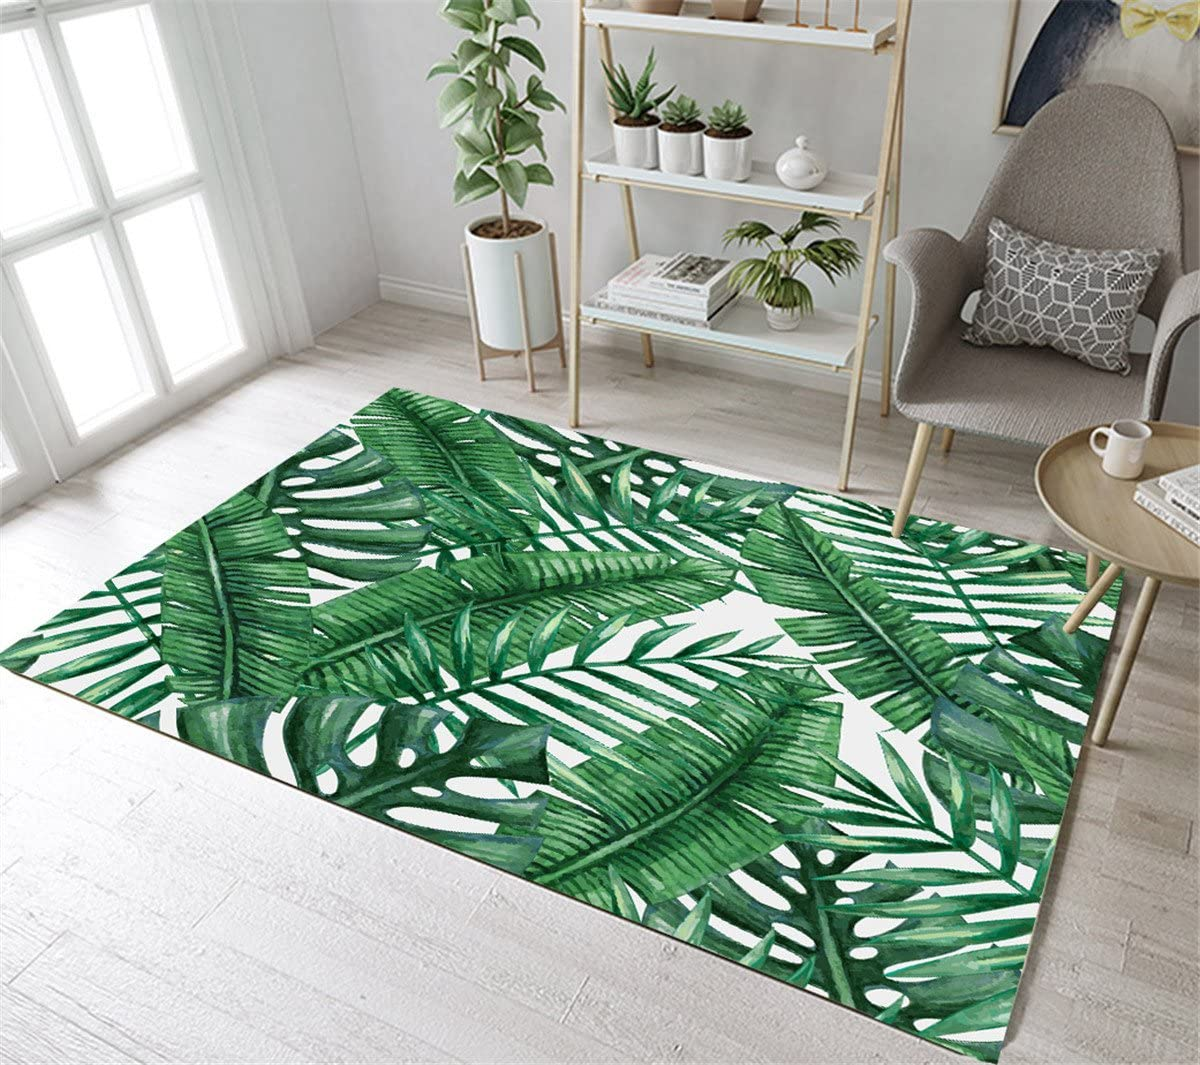 Amazon Com Lb Tropical Jungle Banana Leaves Pattern Print Rug Watercolor Tropical Plant Leaves Design Area Rug For Living Room Study Kids Room Non Toxic Flannel Anti Slip Decorative Rug 39 X 59